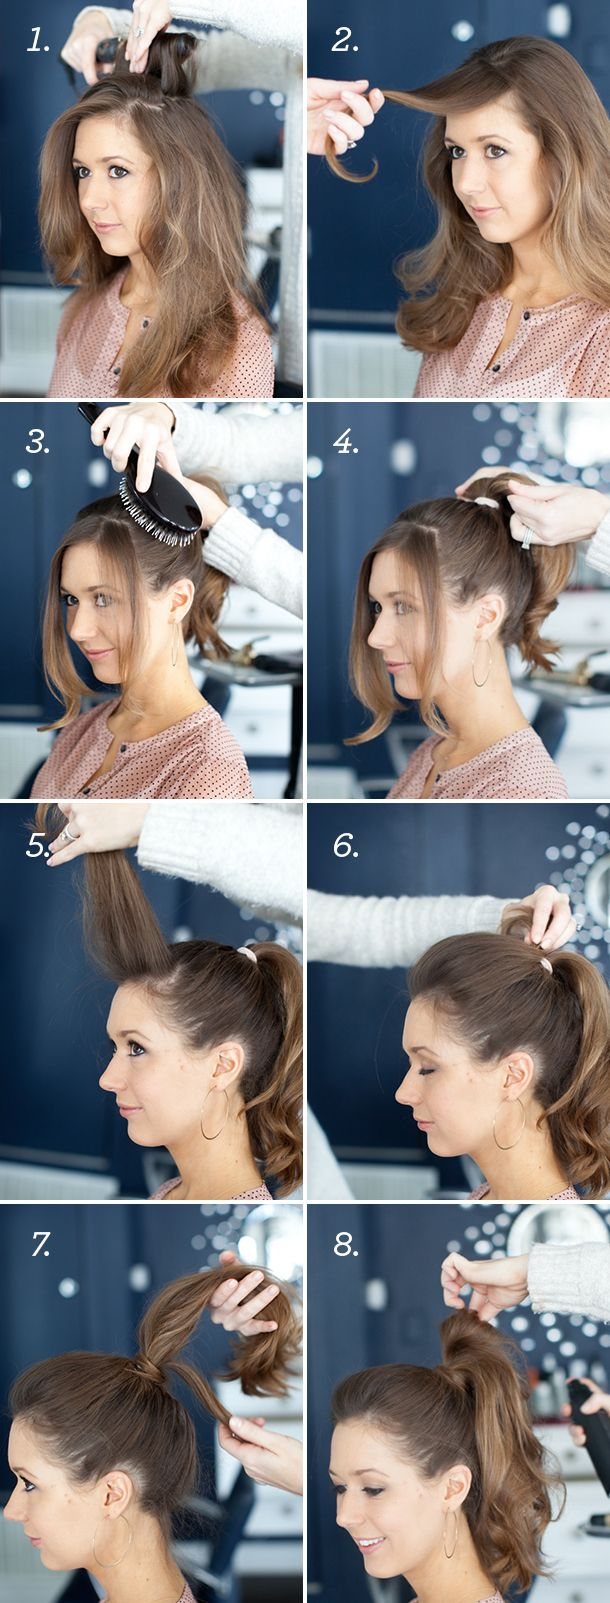 150 best ponytail tutorials images on pinterest ponytail tutorial how to do a perfect high ponytail solutioingenieria